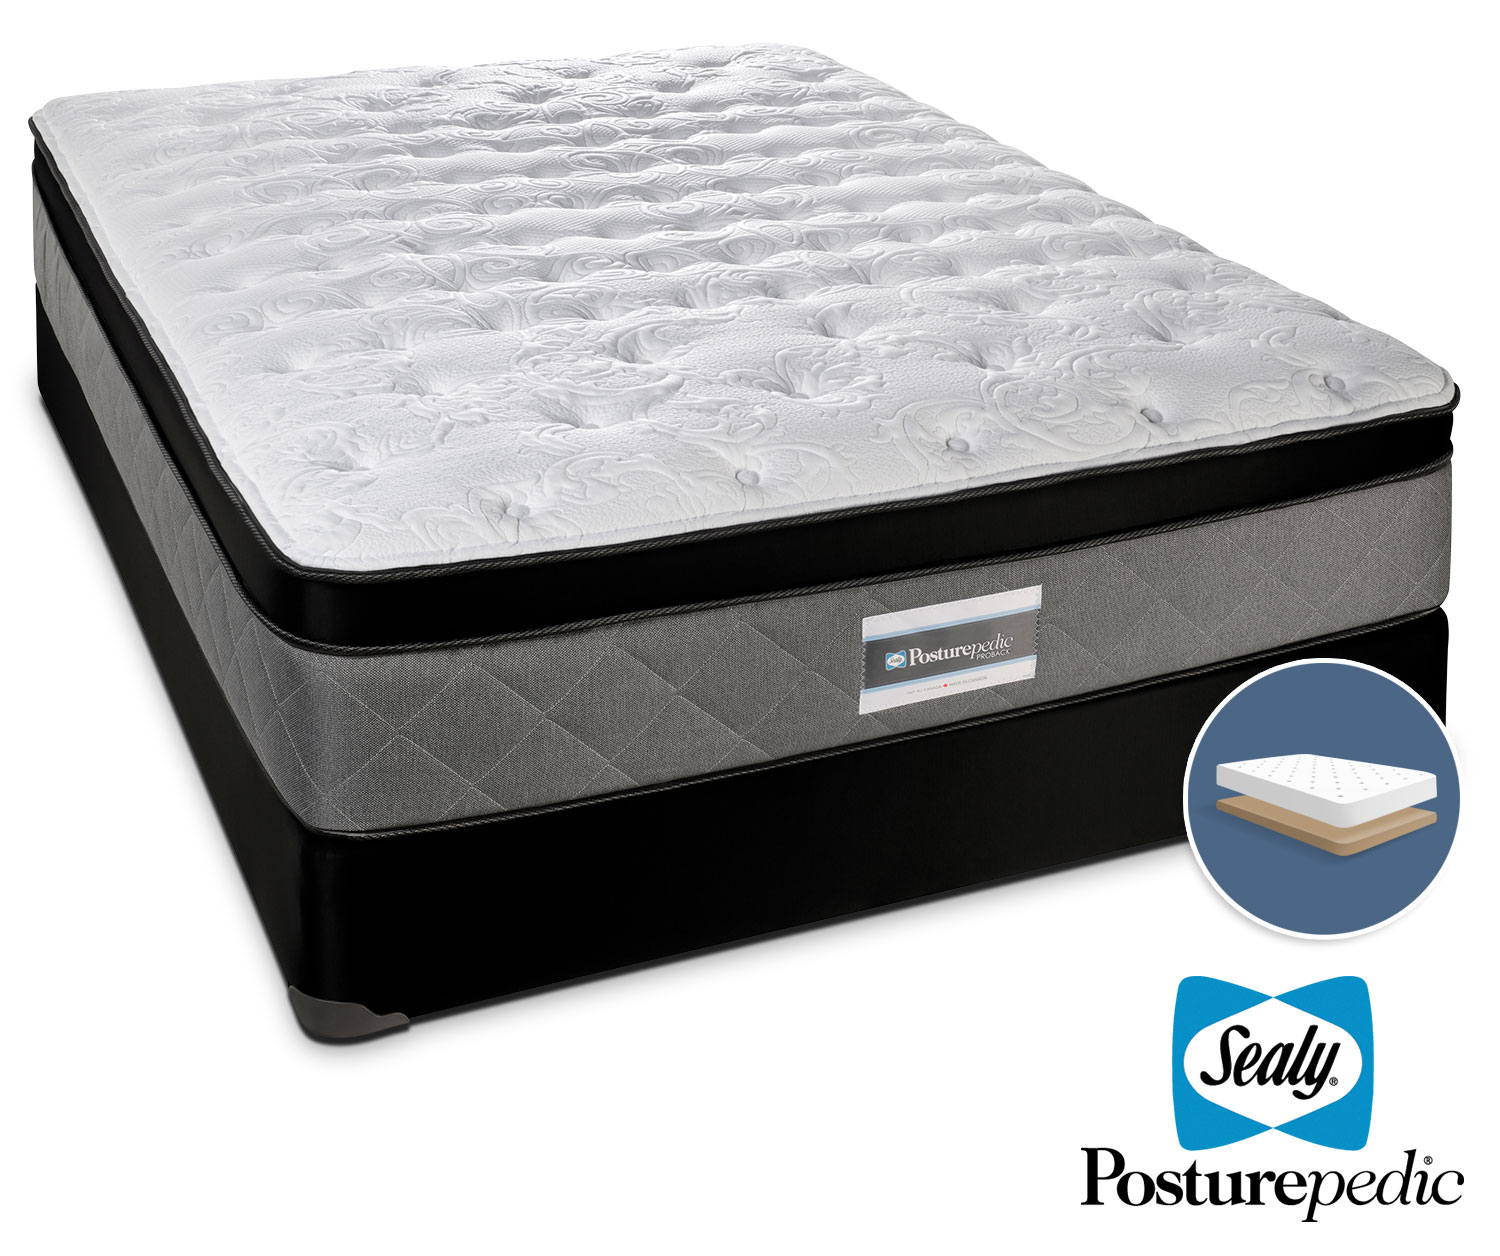 Mattresses and Bedding - Sealy Scripture Plush Queen Mattress and Low-Profile Boxspring Set